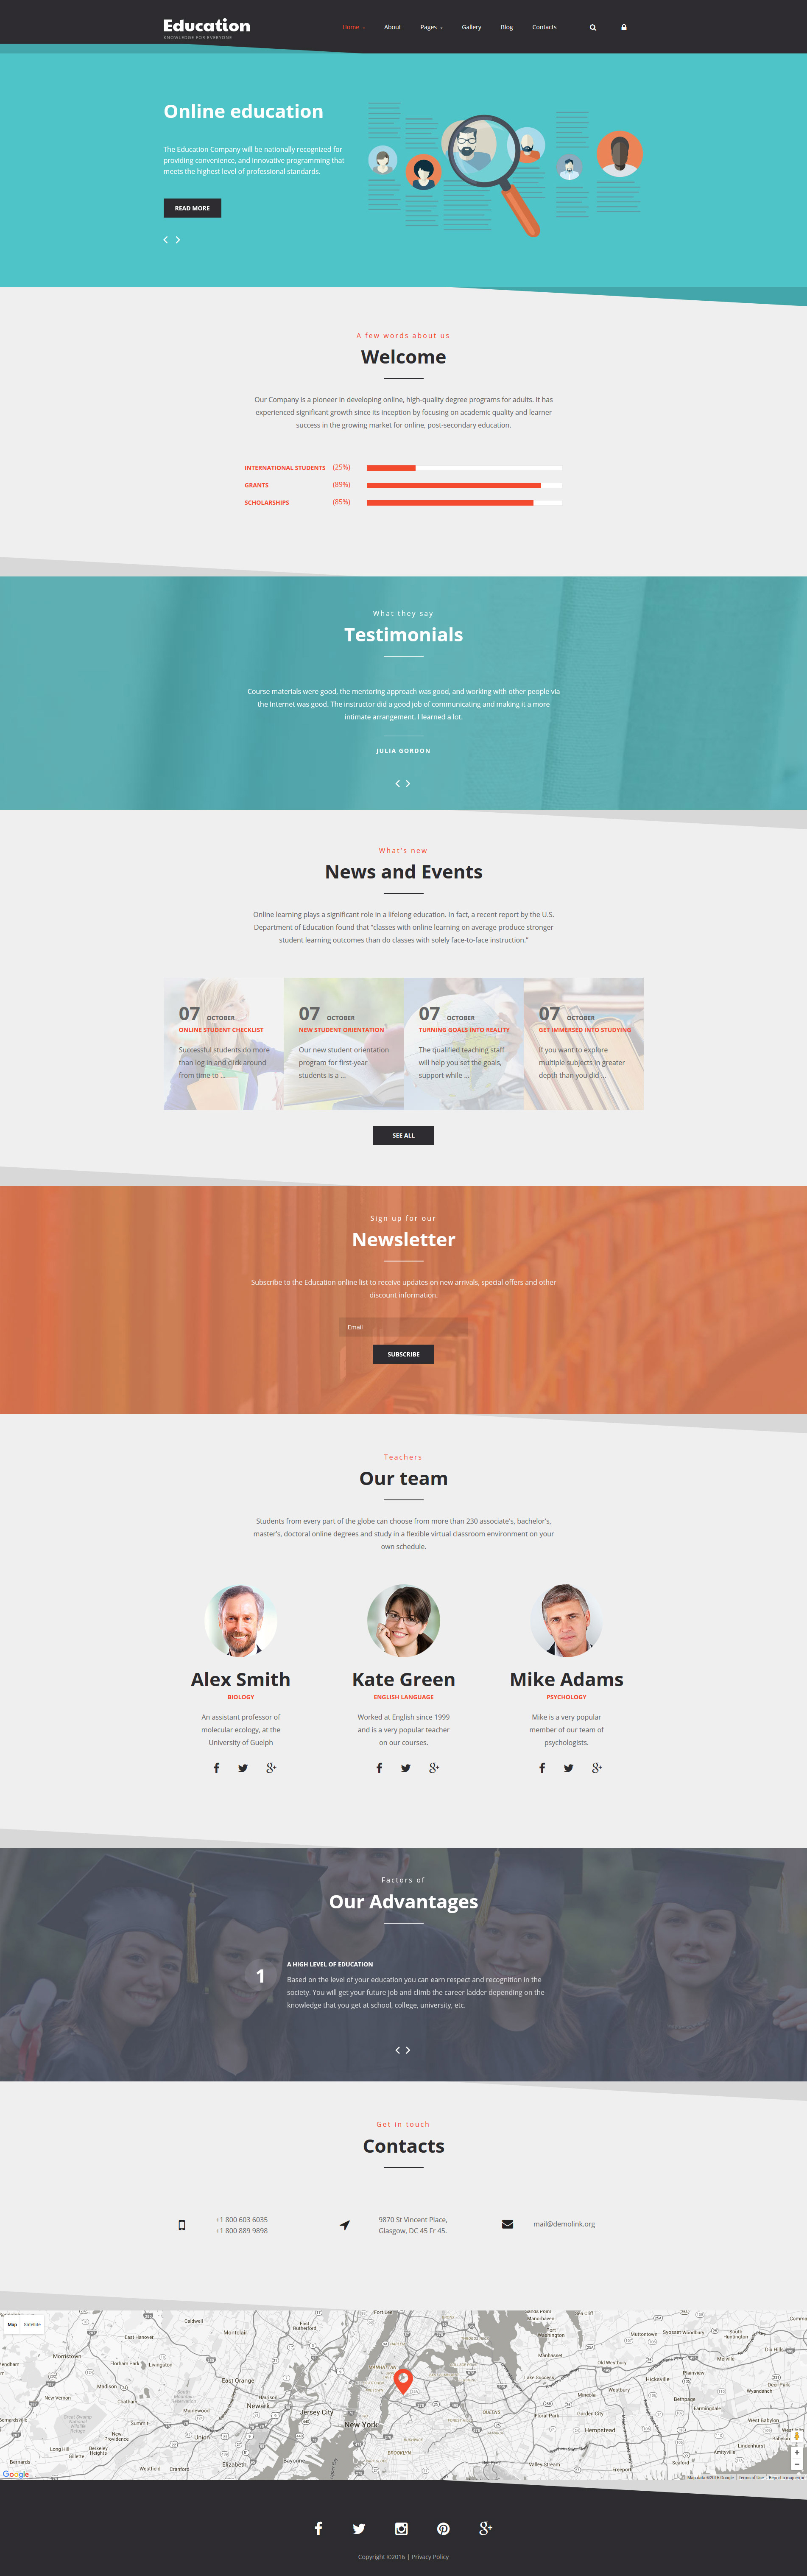 Education Joomla Template - screenshot